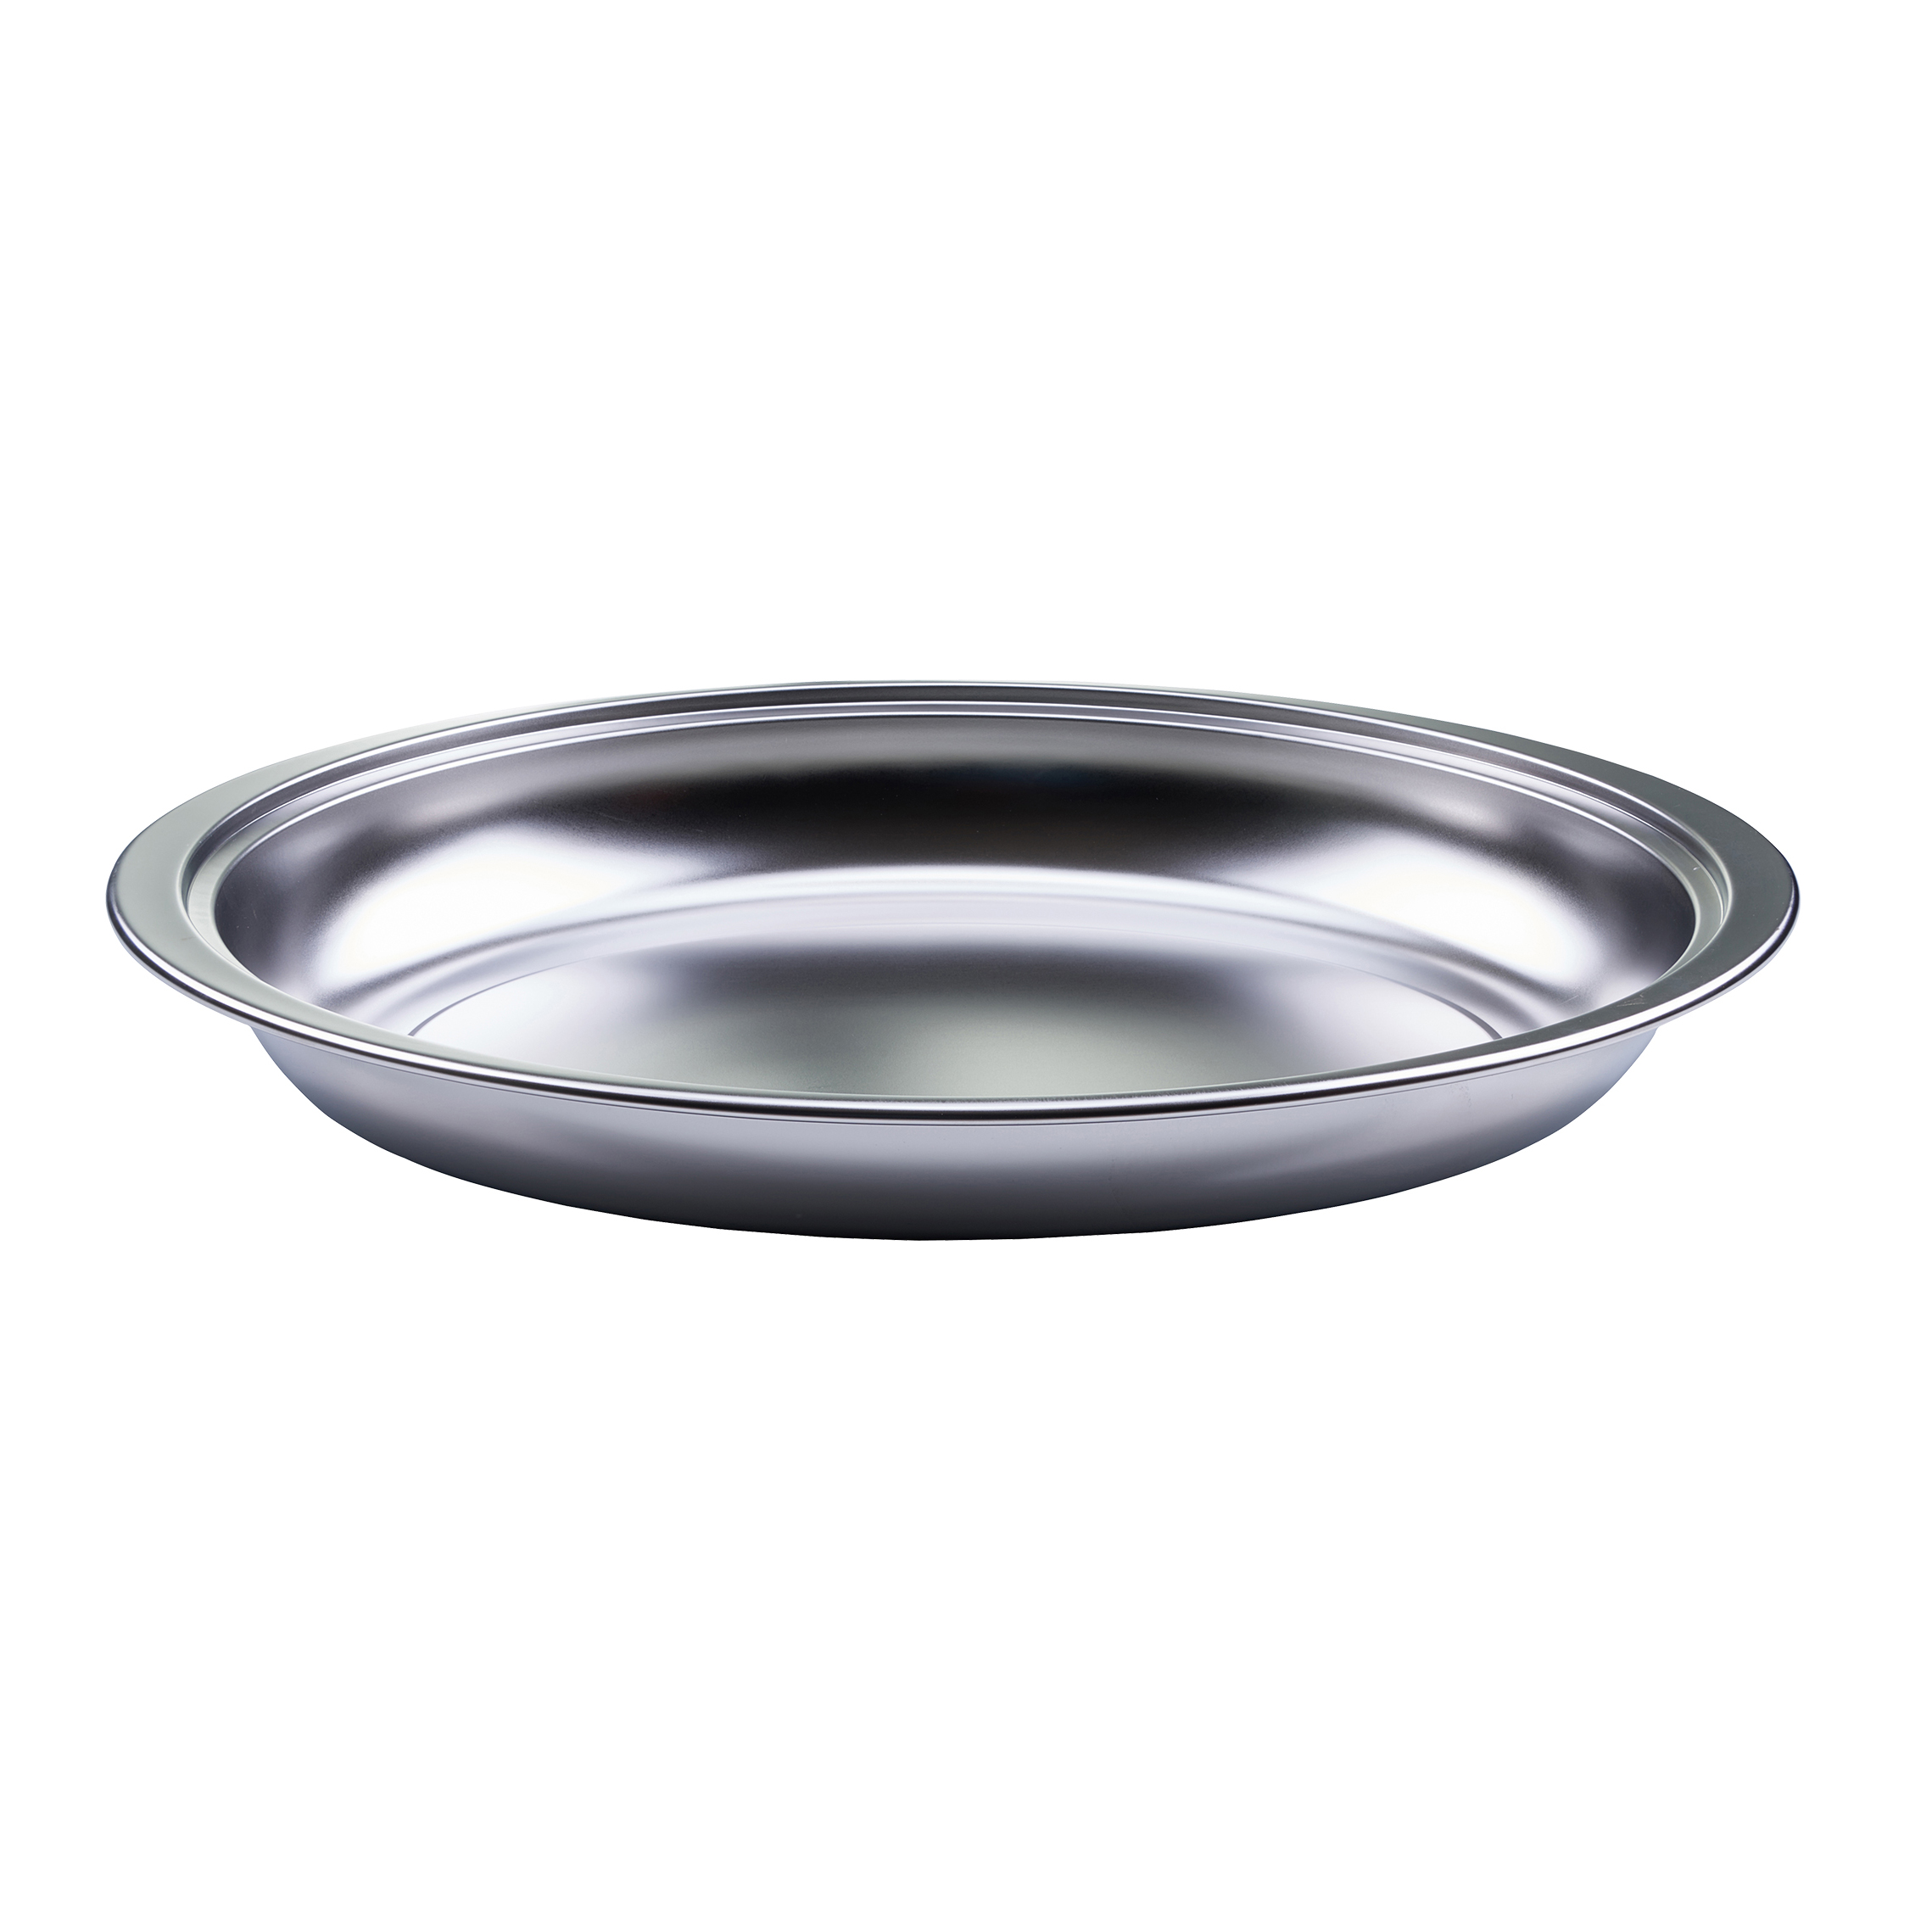 Winco 603-FP chafing dish pan